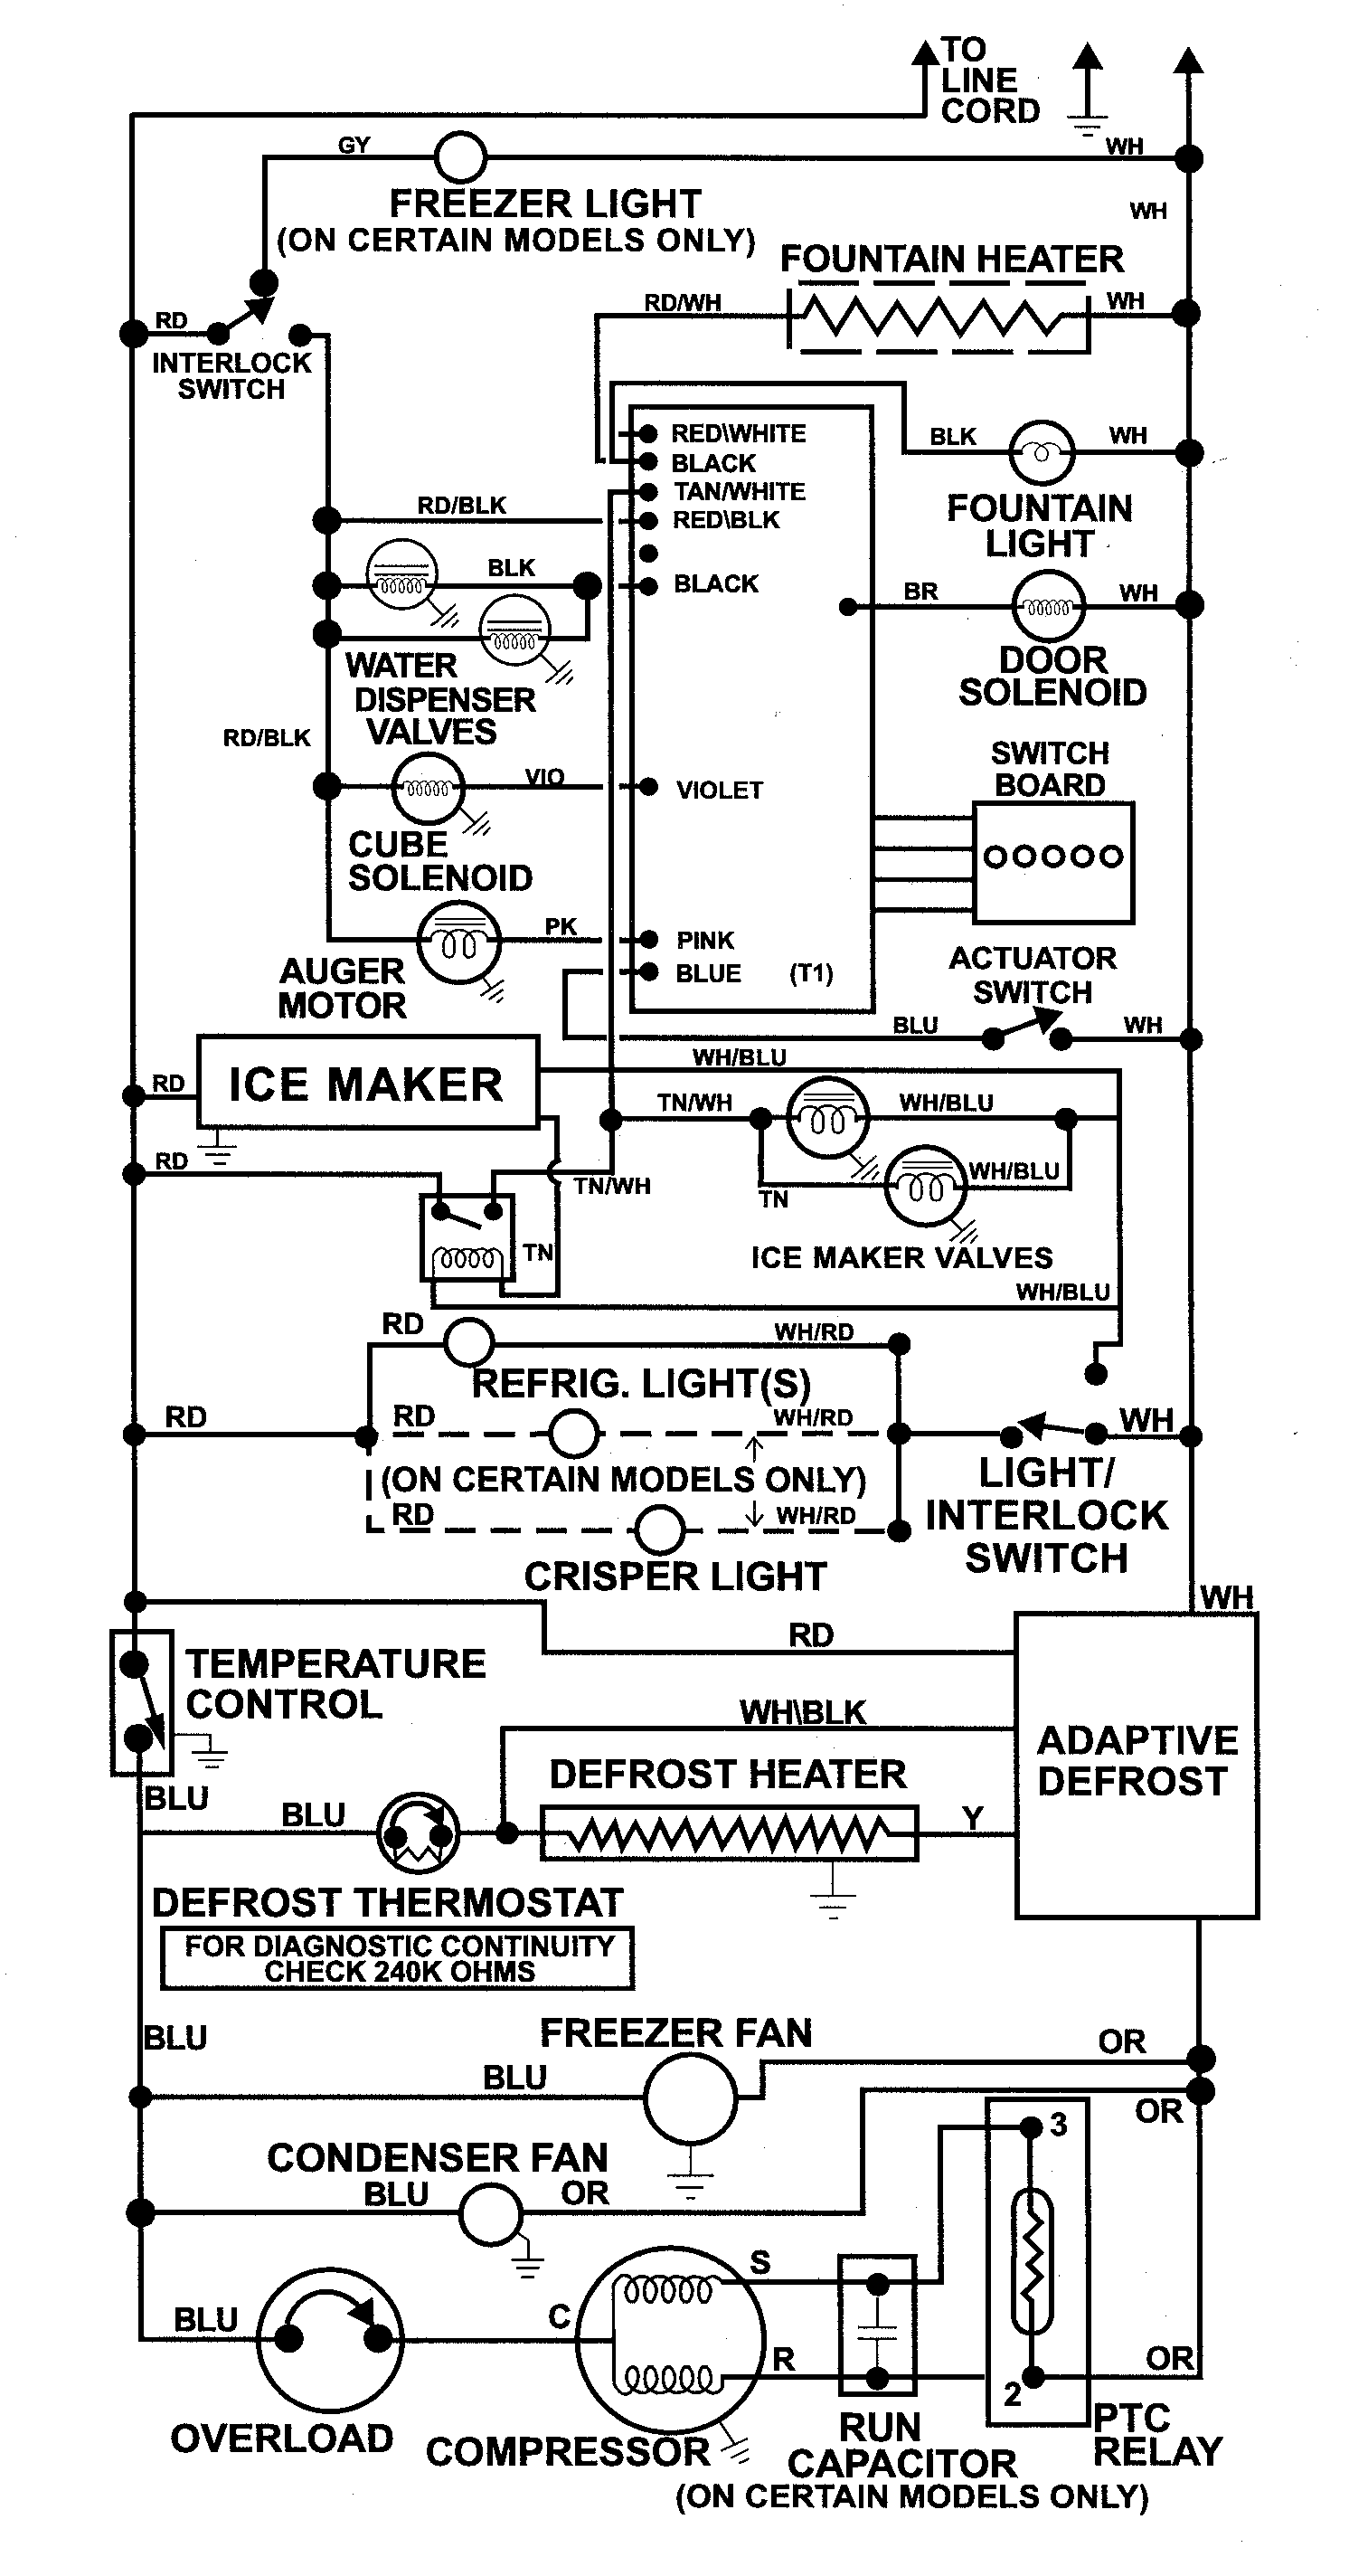 small resolution of looking for maytag model msd2656deq side by side refrigerator repair maytag refrigerator schematic diagram maytag msd2656deq